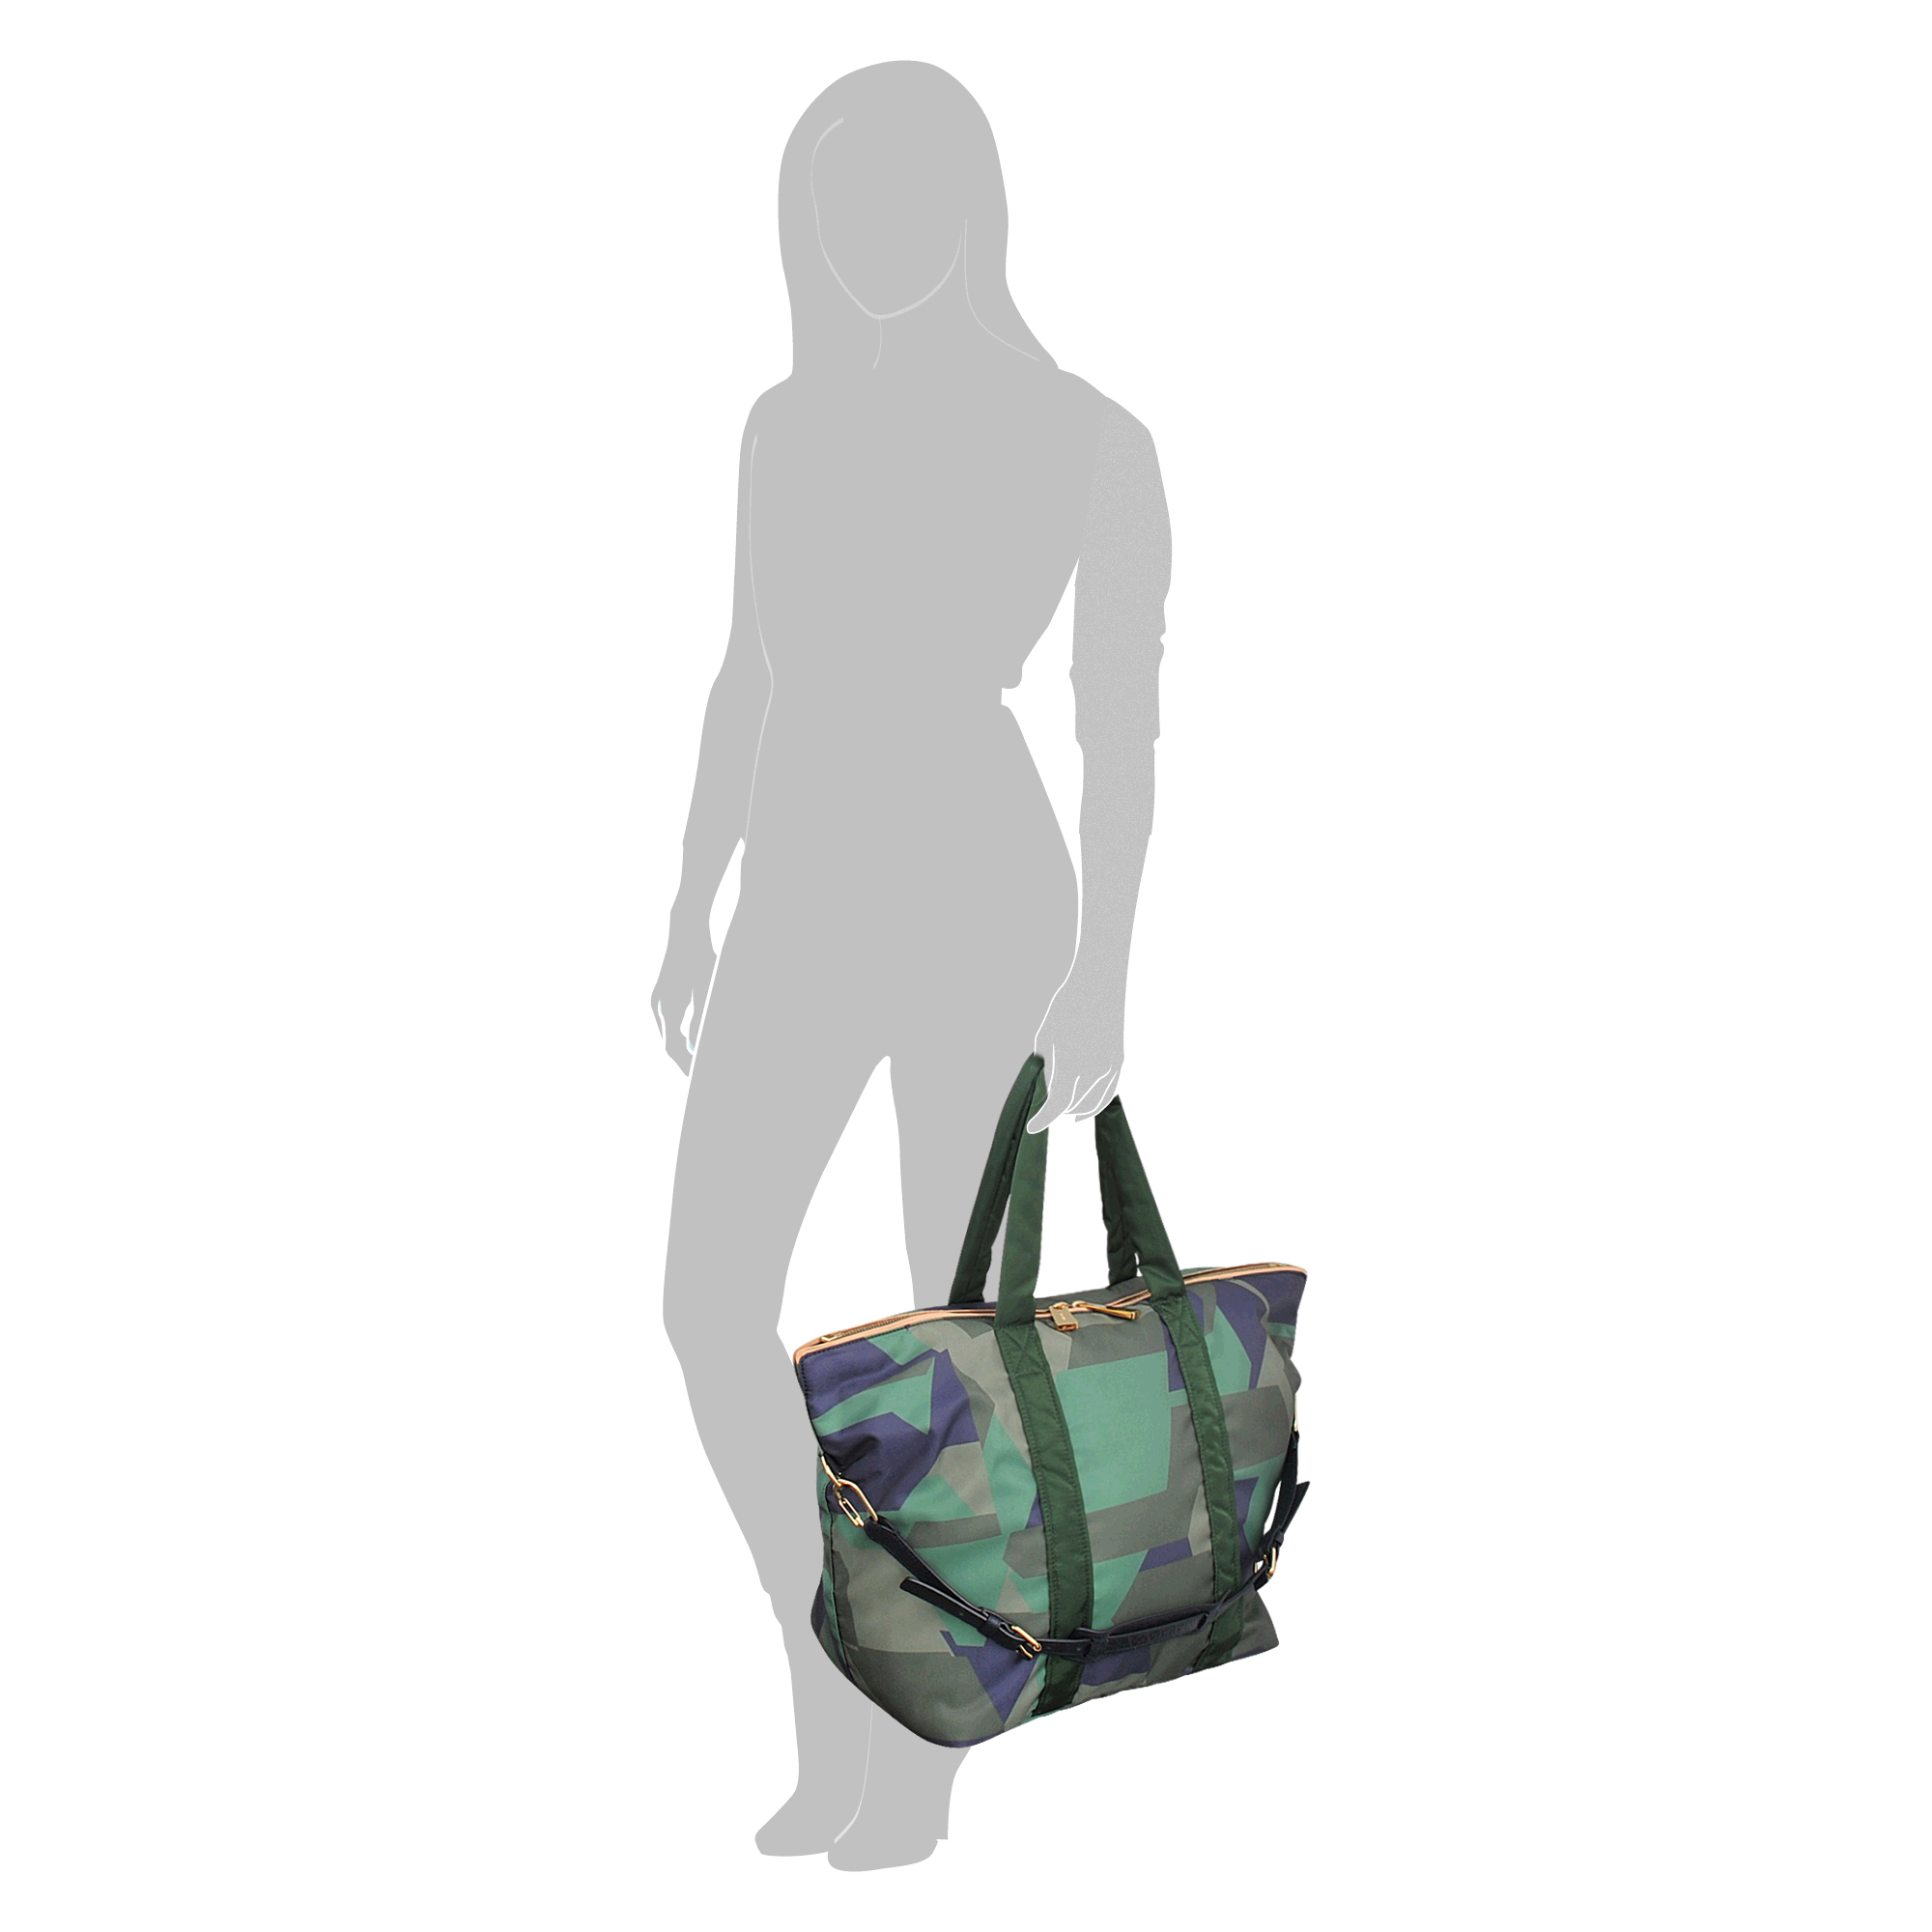 lyst vanessa bruno large zipped atlanta camouflage tote in green. Black Bedroom Furniture Sets. Home Design Ideas